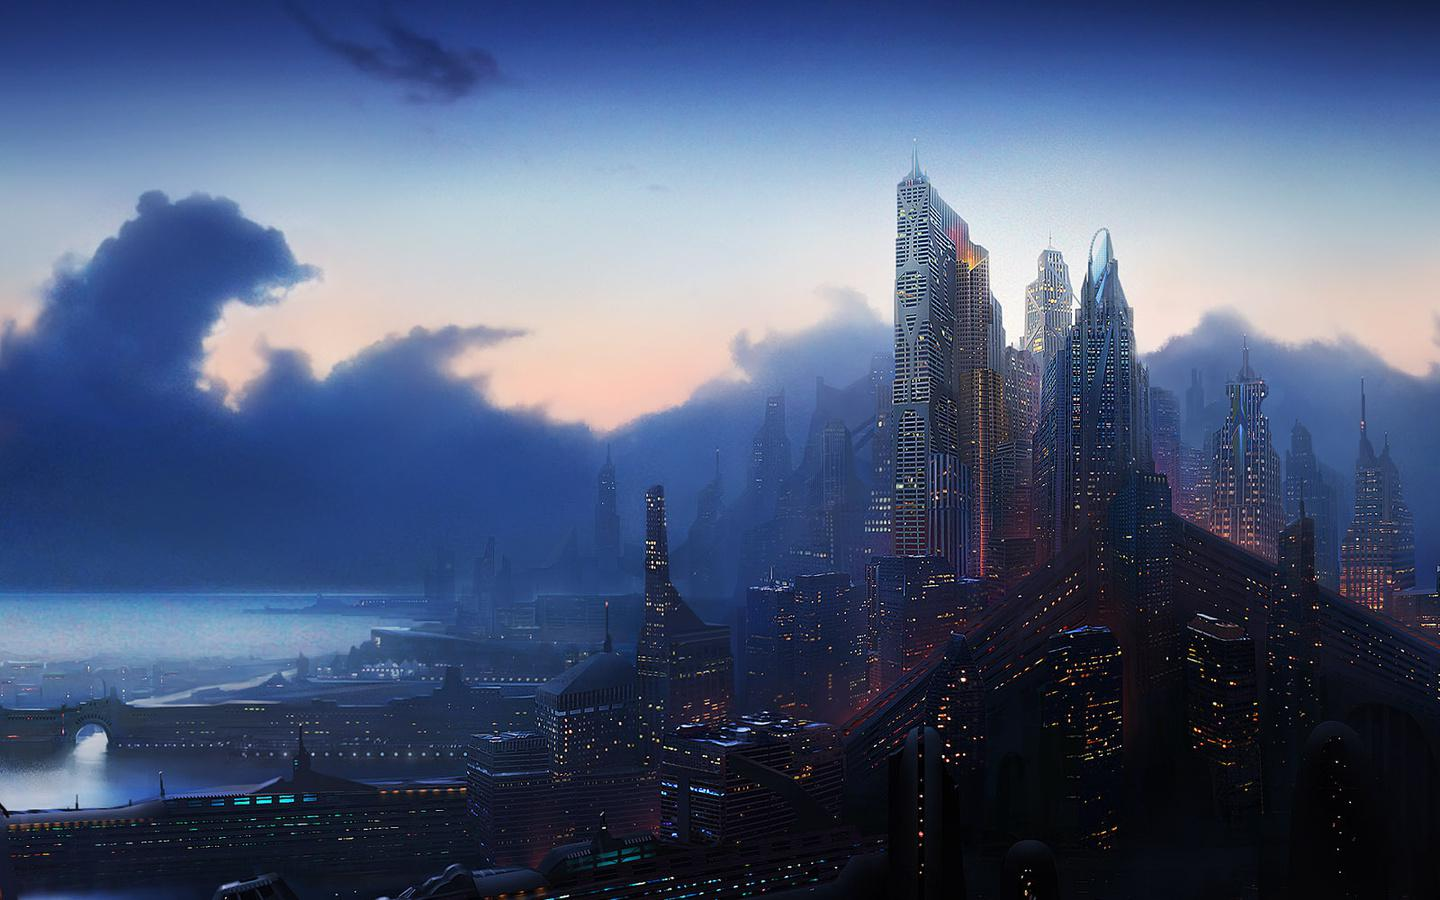 Fantasy City Wallpapers, Pictures, Images